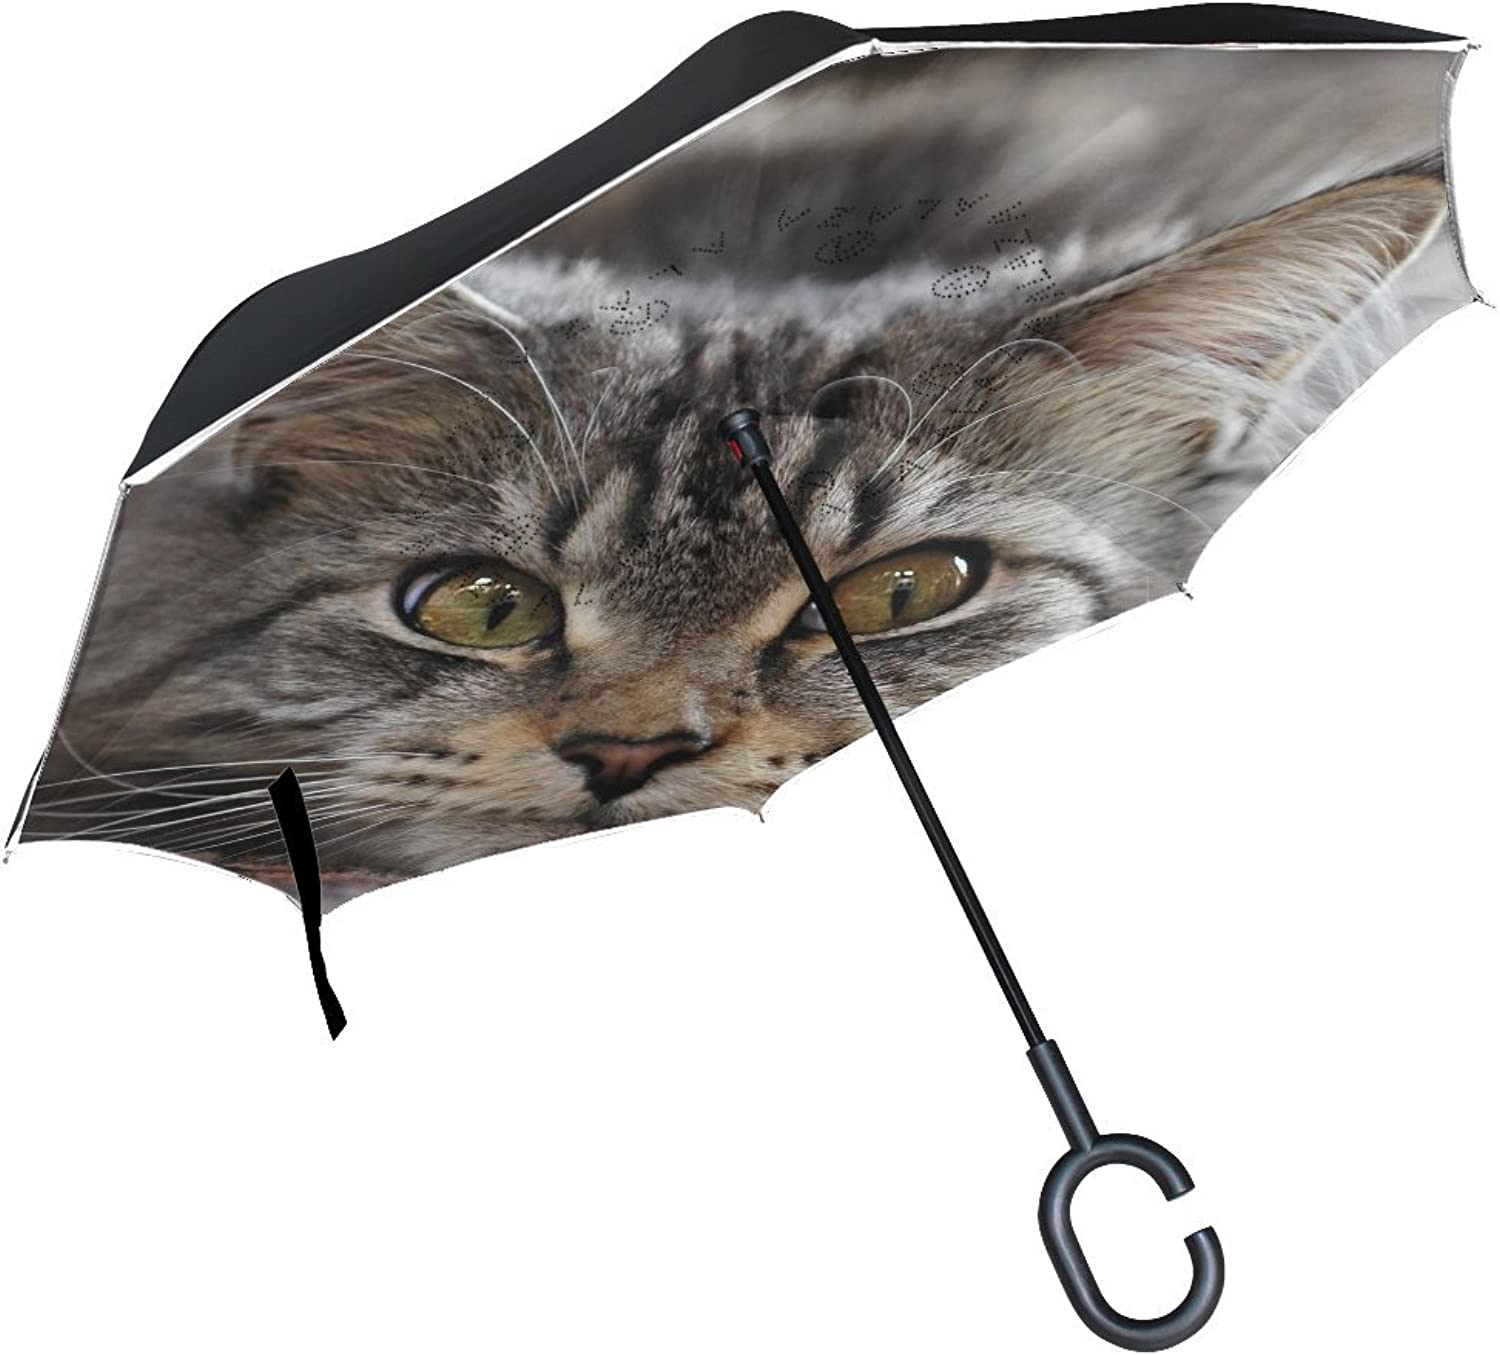 Animal Cat Maine Coon Fluffy Blackandwhite Small Animated Cute Pet Ingreened Umbrella Large Double Layer Outdoor Rain Sun Car Reversible Umbrella